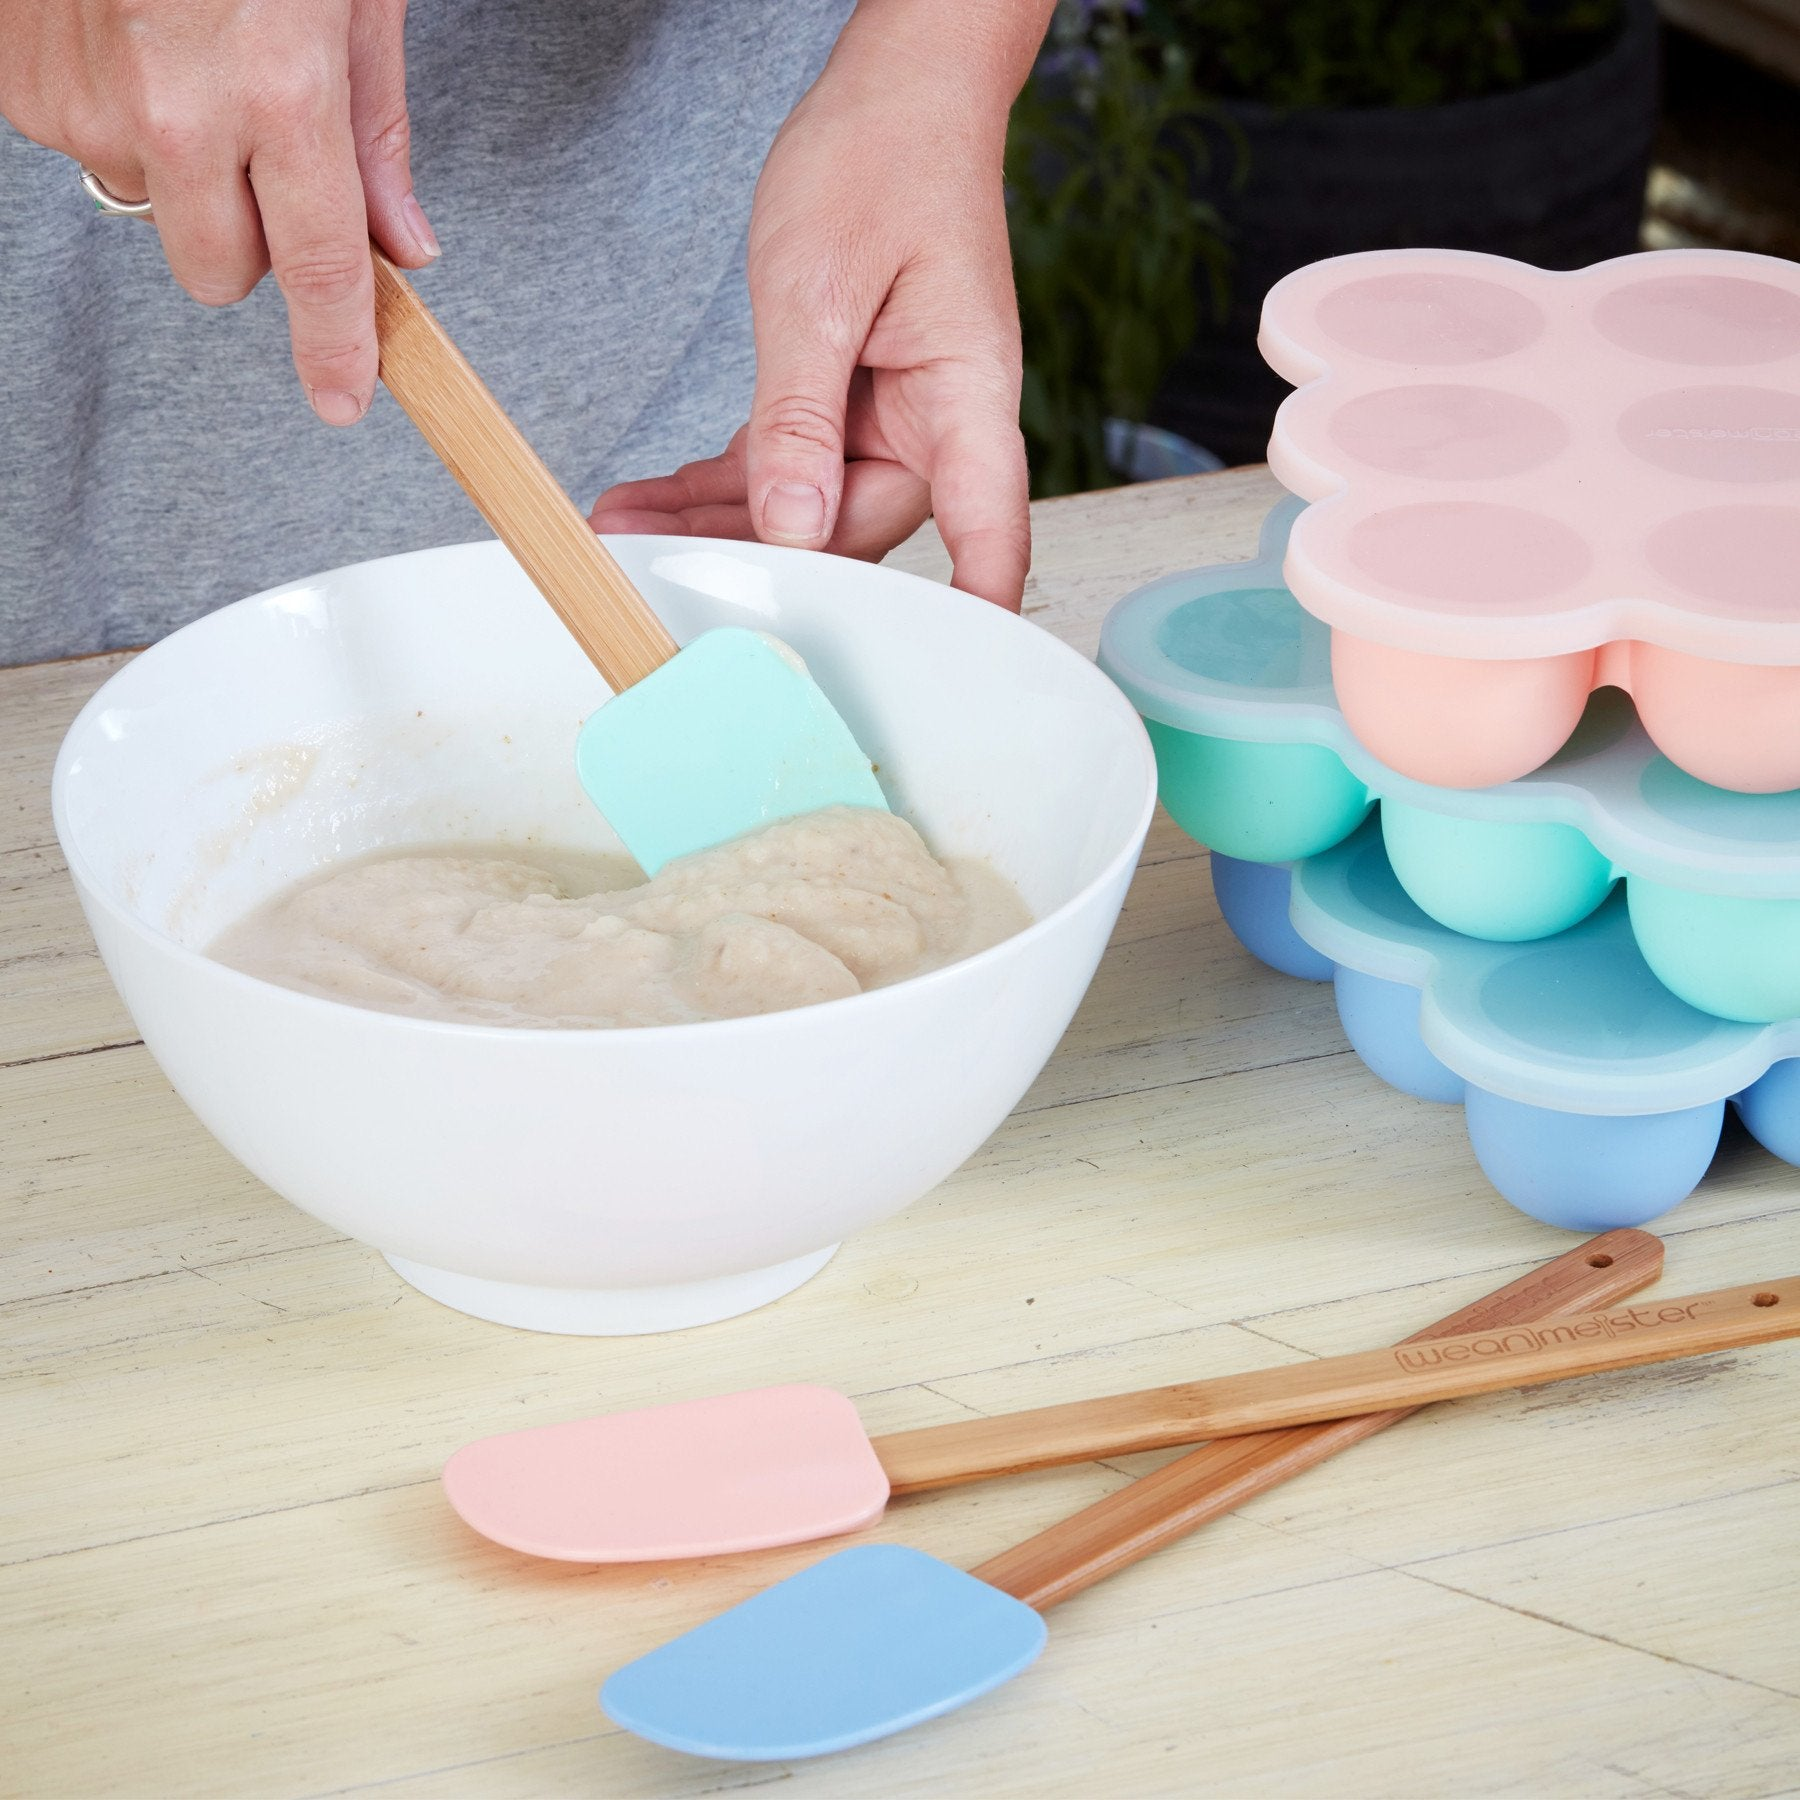 Wean Meister Silicone Spatula Wean Meister Baby Feeding at Little Earth Nest Eco Shop